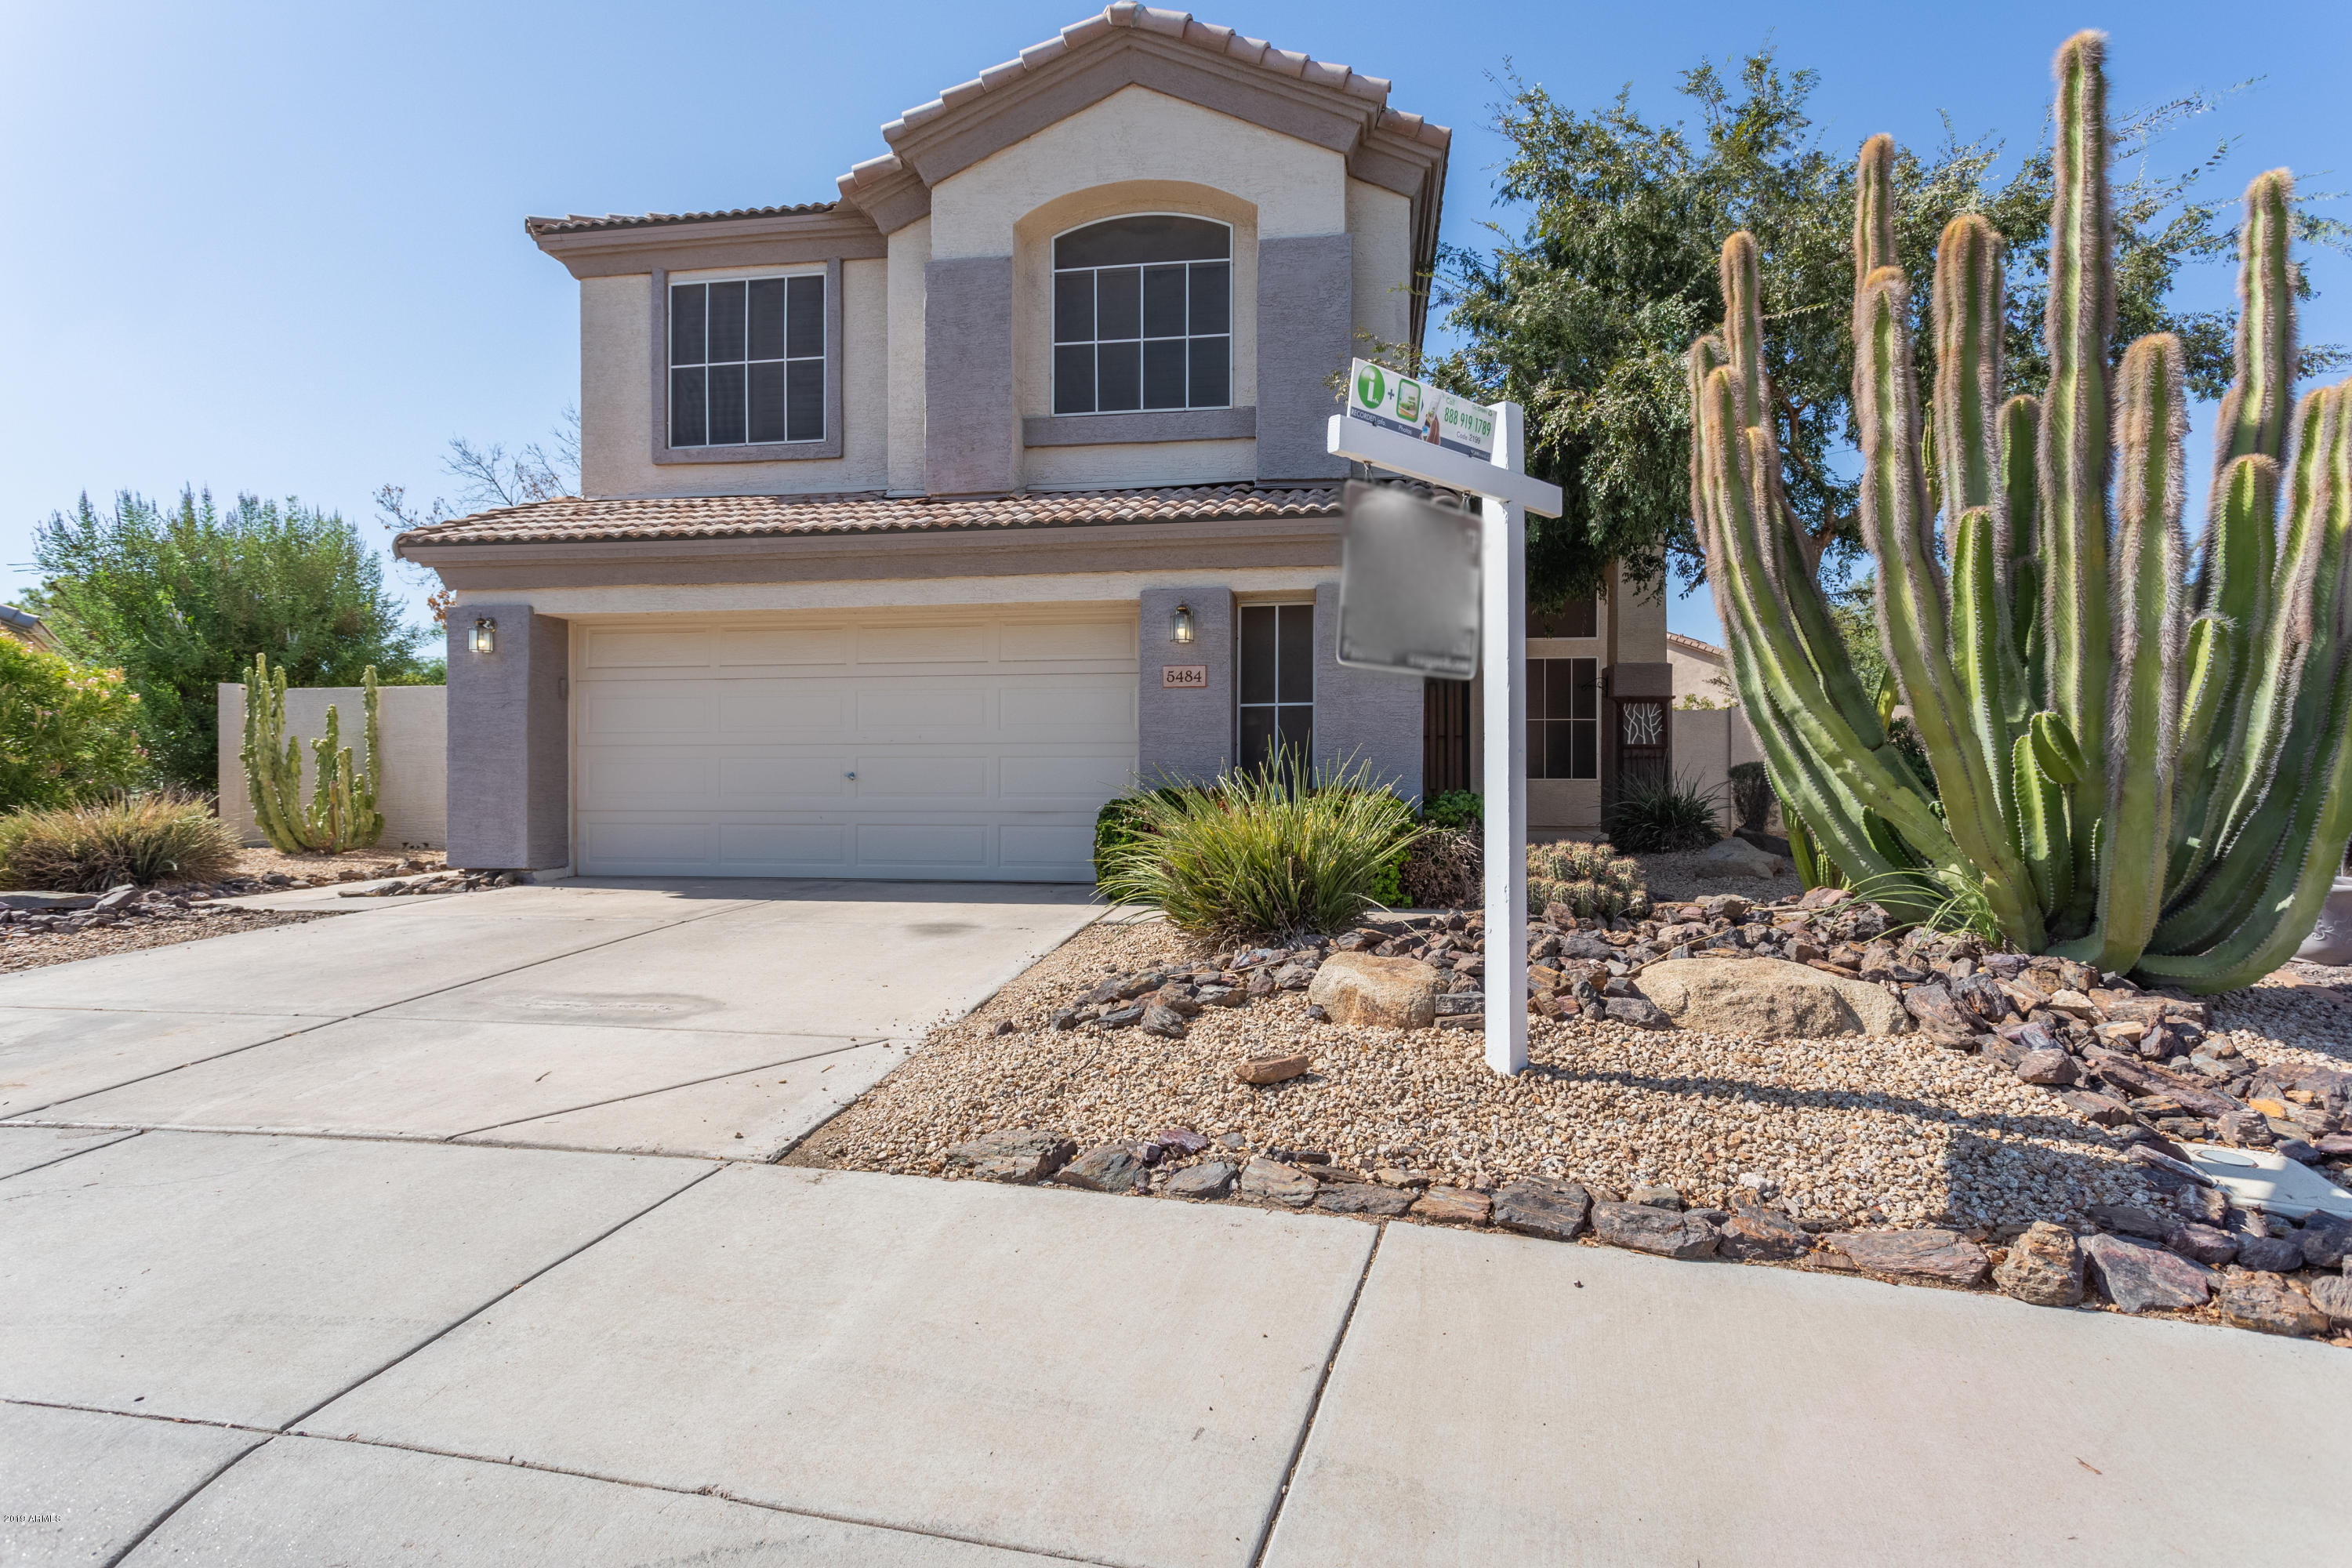 Photo of 5484 W VENUS Way, Chandler, AZ 85226